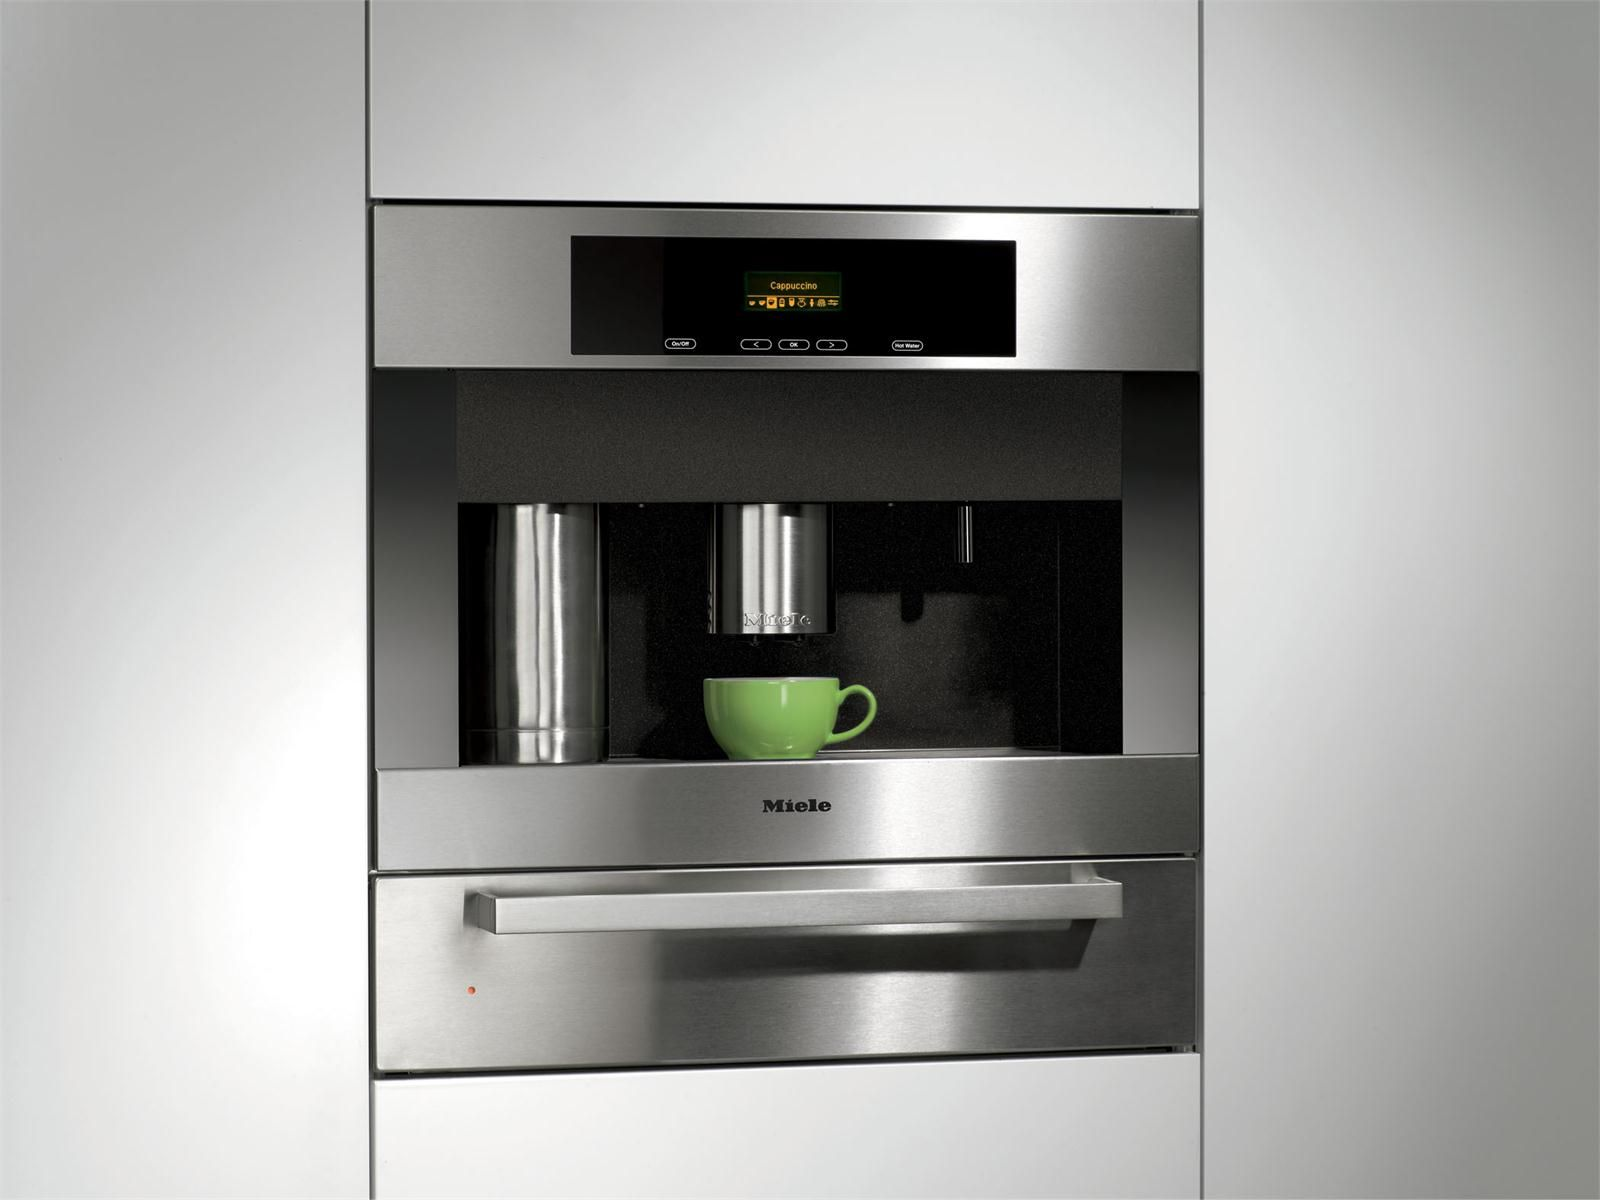 This Coffee System Is Amazing I Haven T Been To A House Since Inheriting One Miele Whole Bean Stainless Steel